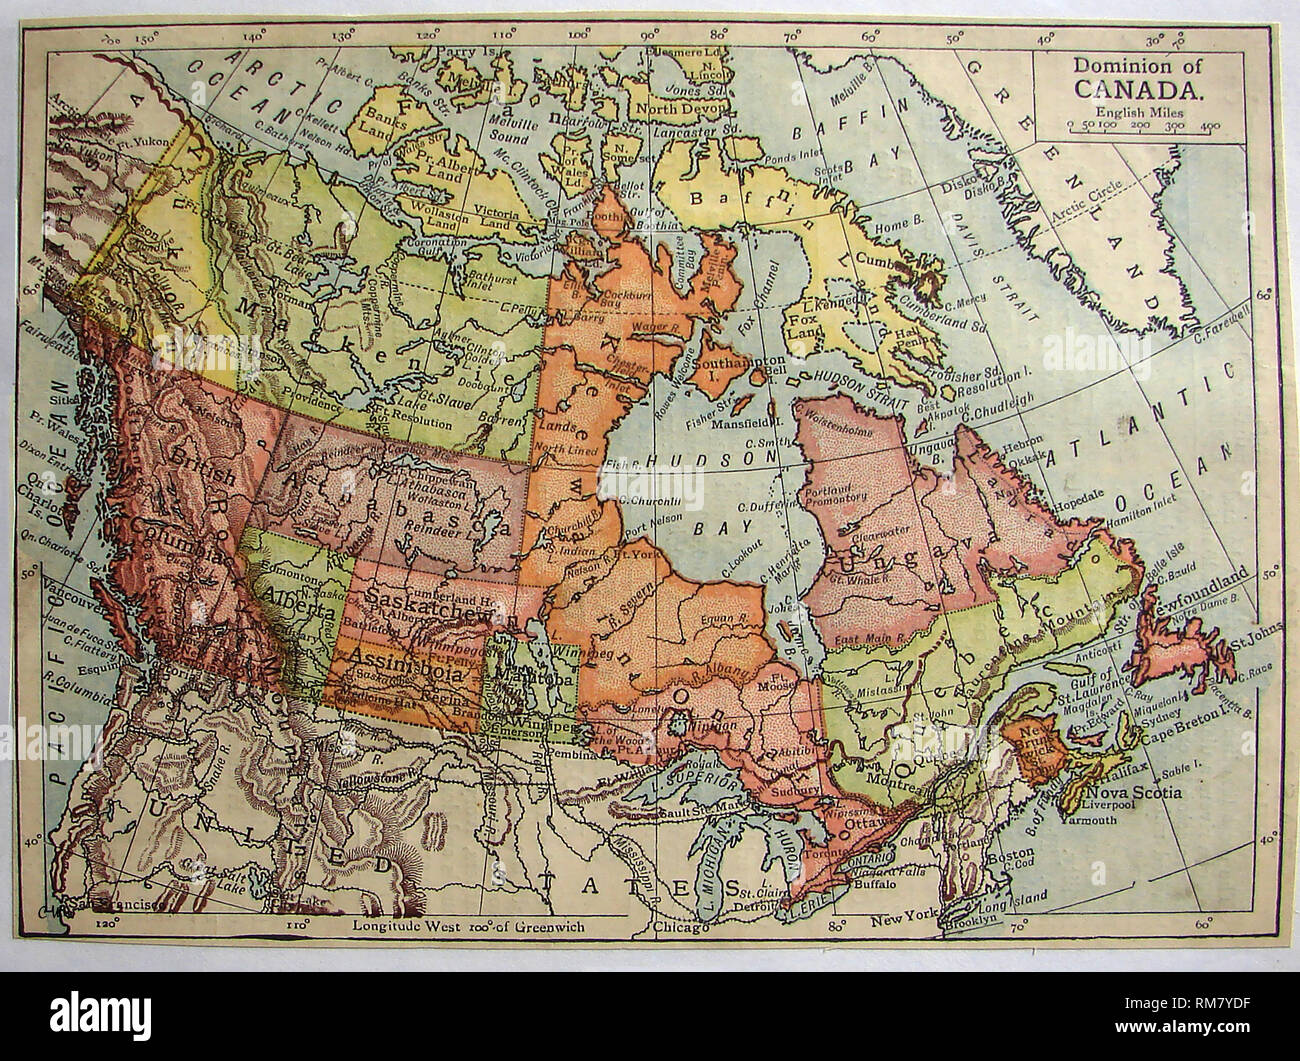 Map Of Canada Showing Alberta.1901 Coloured Map Of The Dominion Of Canada Showing Districts Of